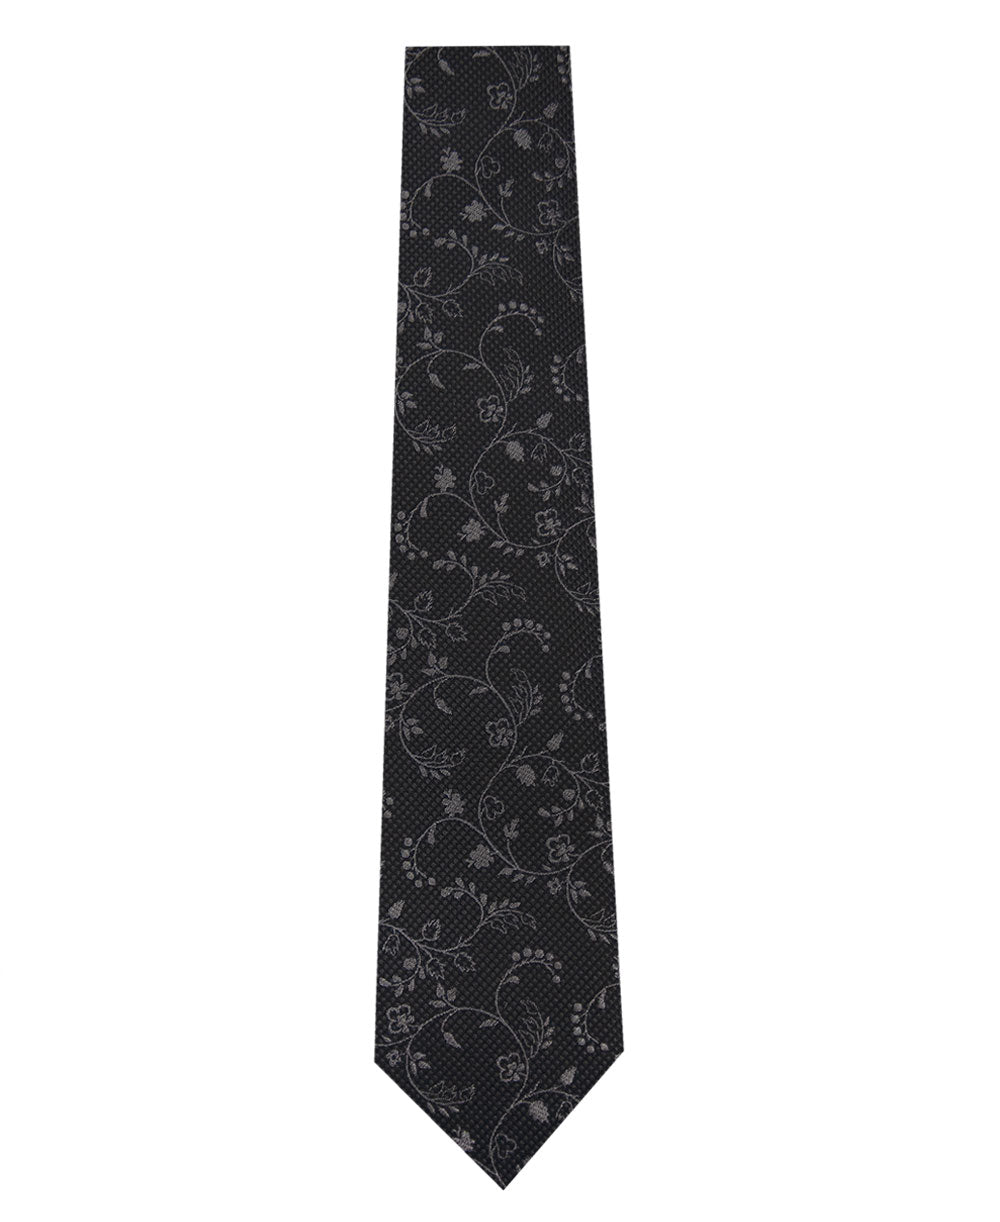 Black and Grey Floral Design Silk Tie Long